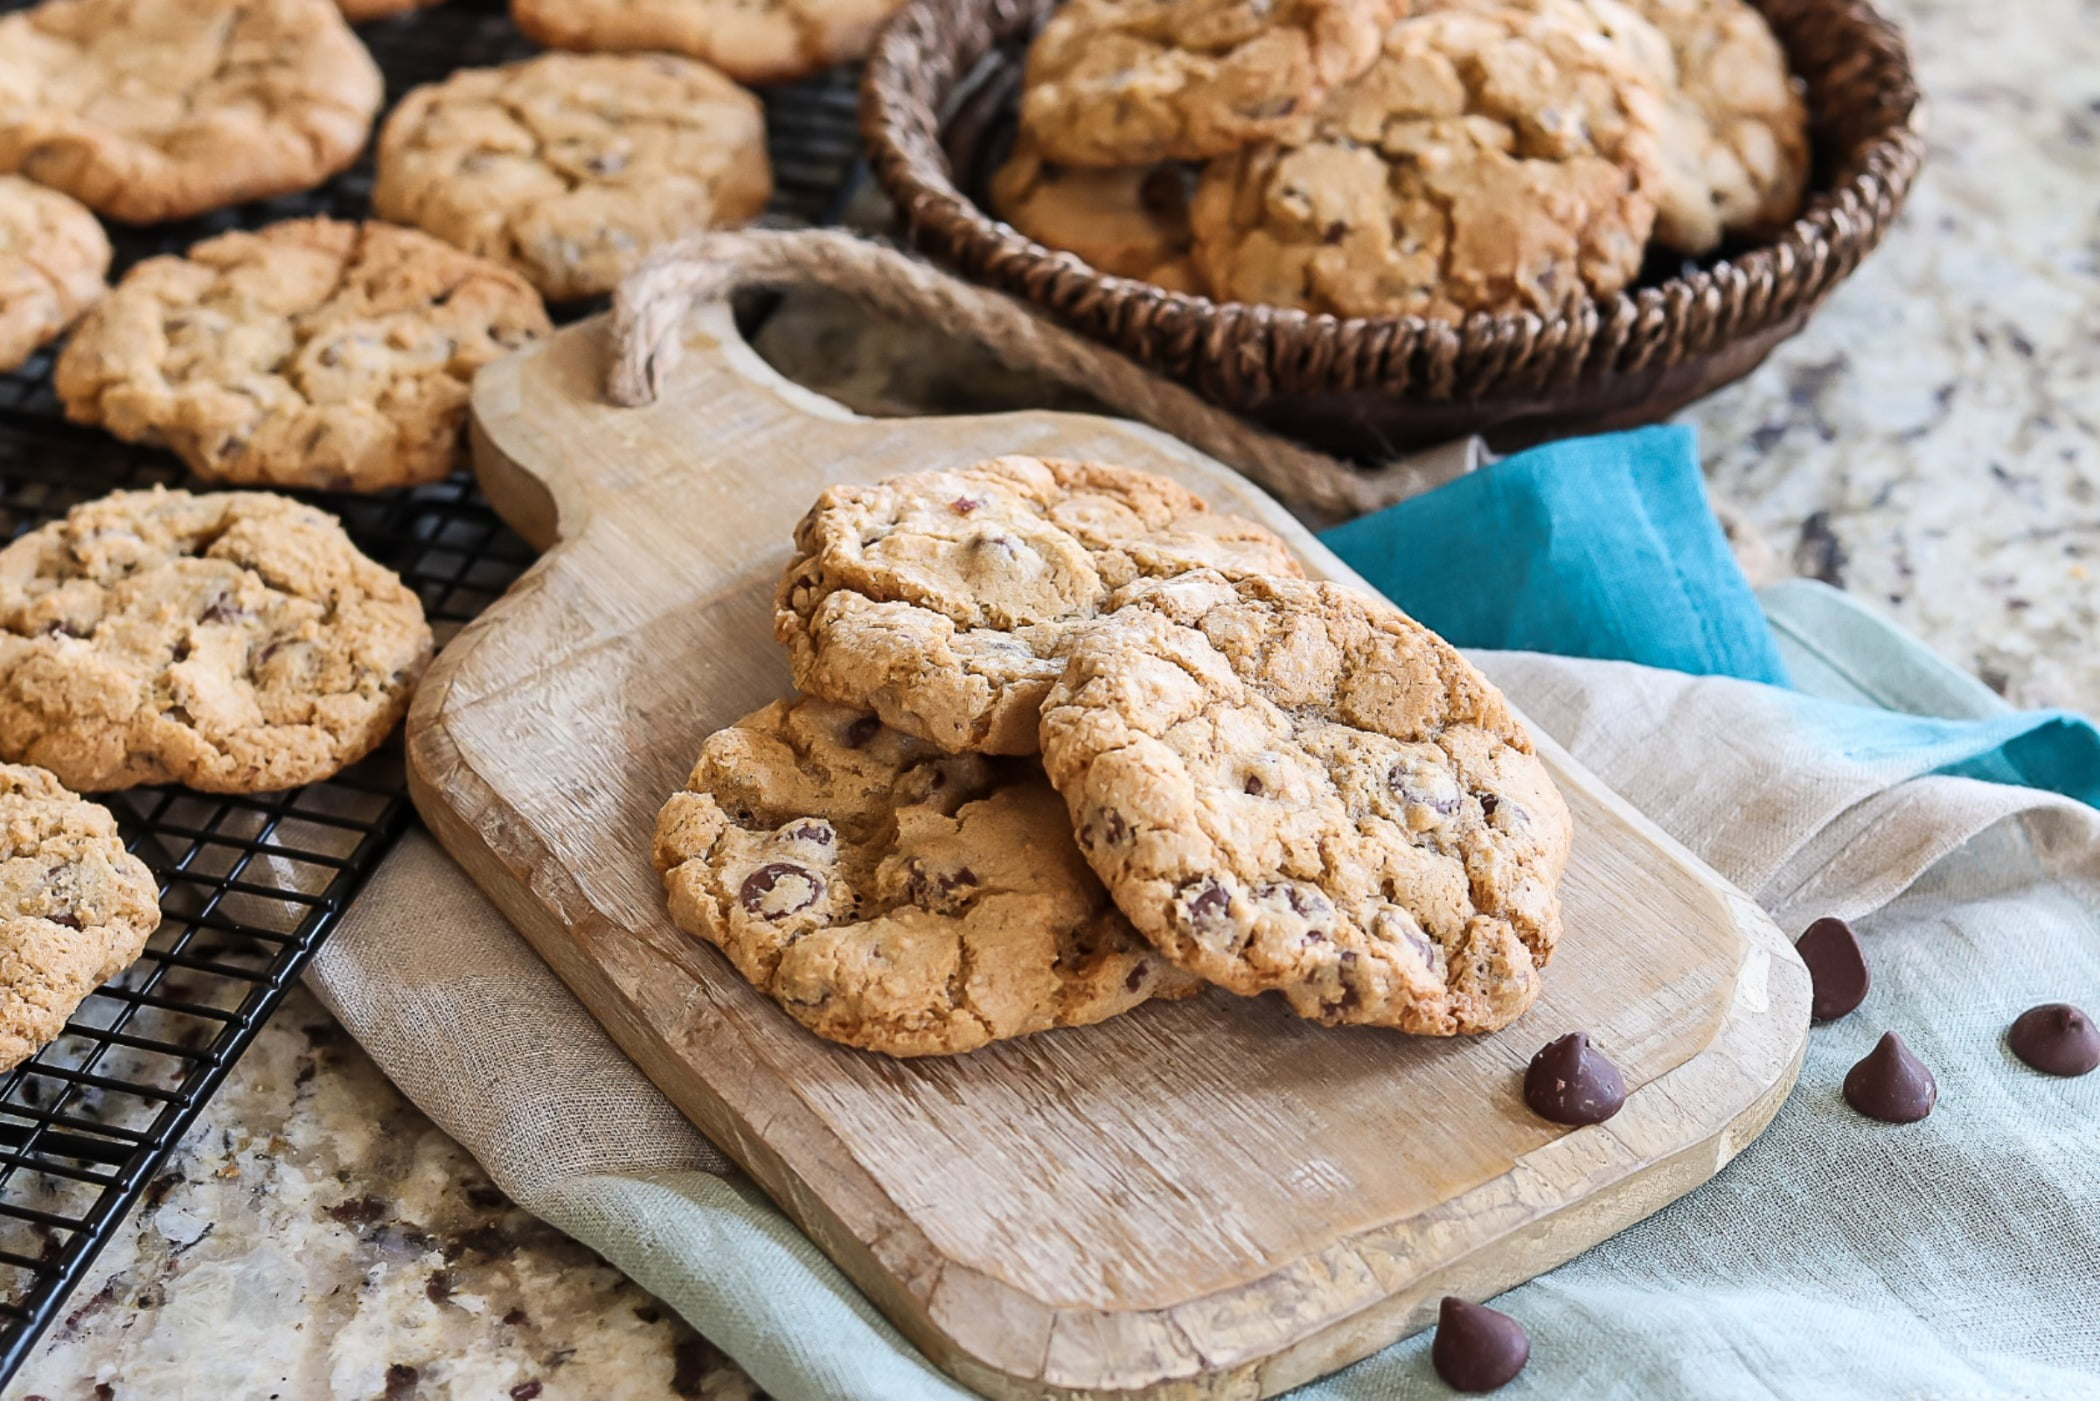 Cookies, Baked goods, Chocolate chips, Serving board, Recipe, Cuisine, Confectionery, Snack, Ingredient, Dessert